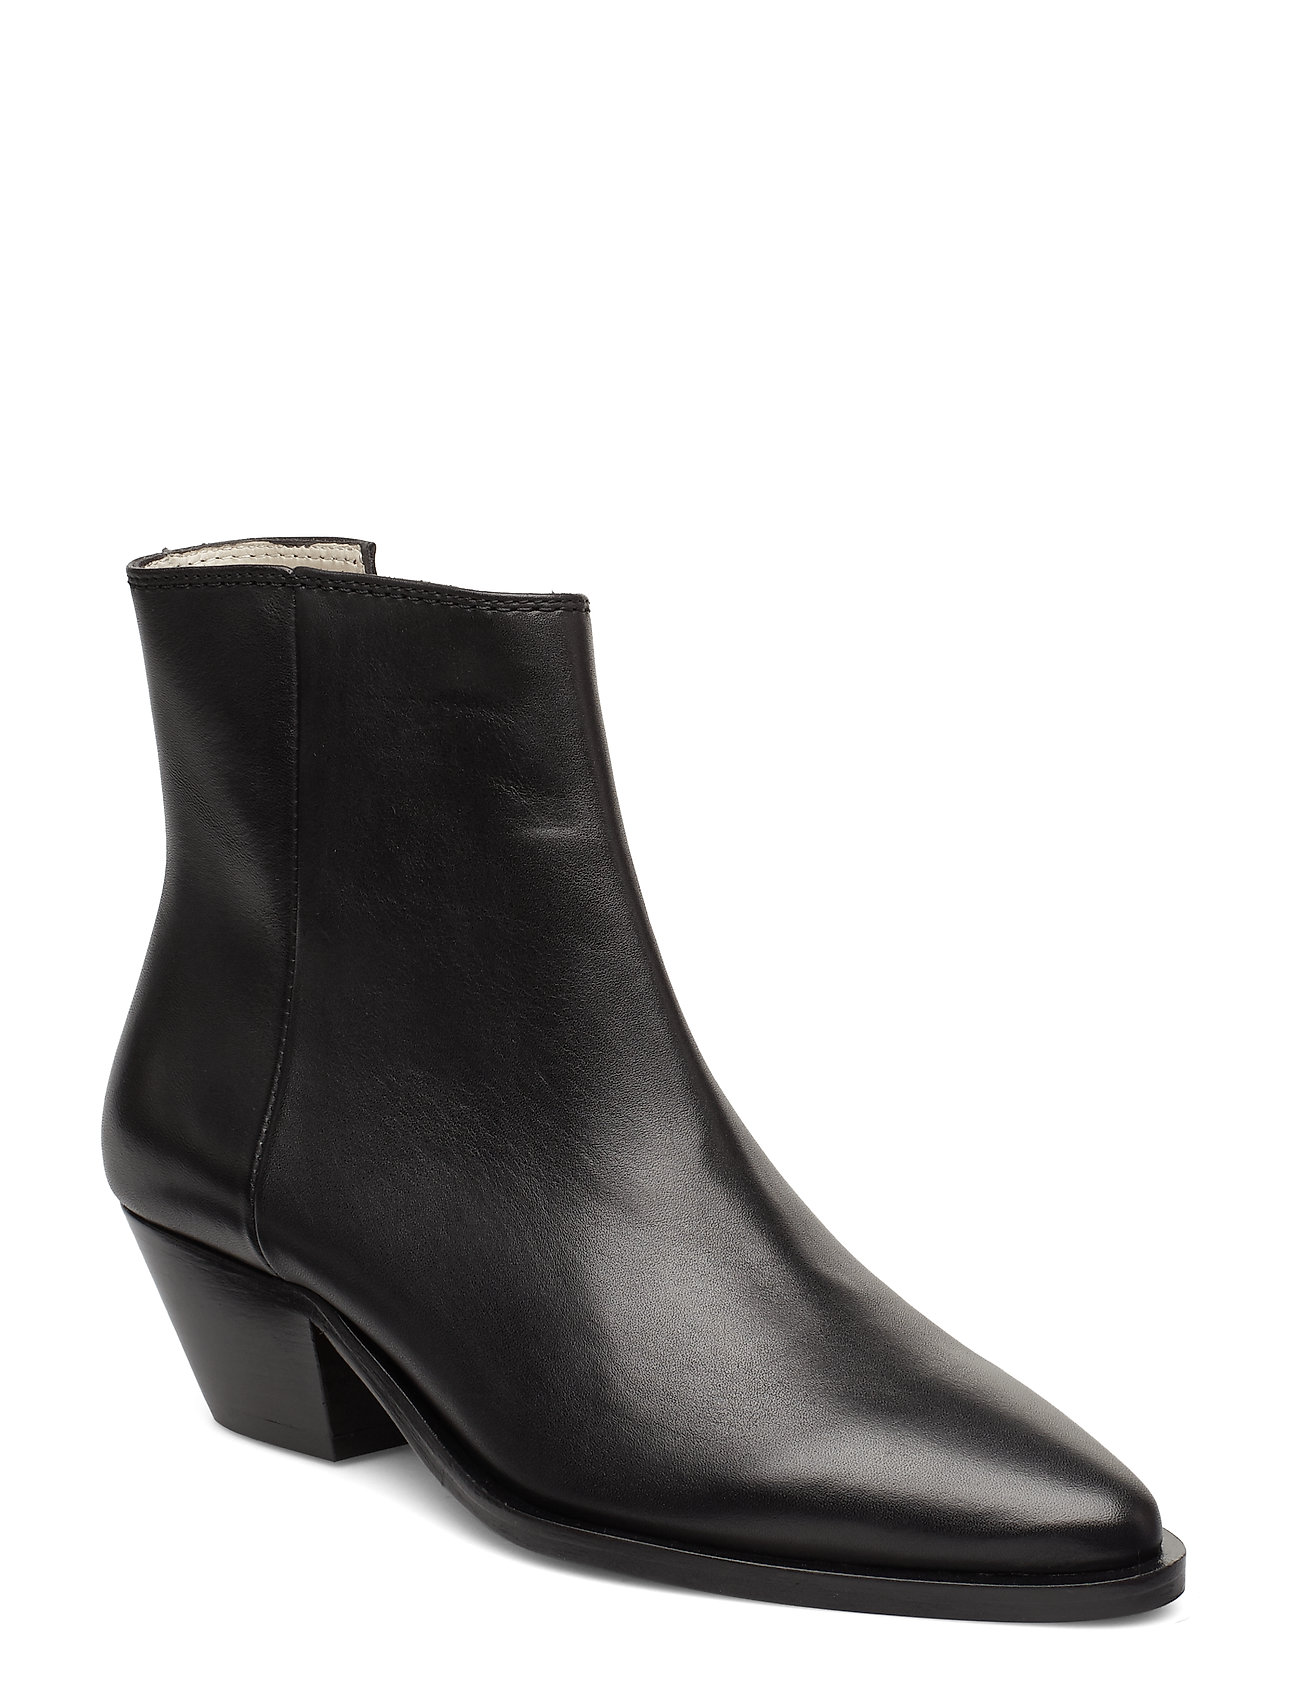 Image of Hunter Ankle Boot Shoes Boots Ankle Boots Ankle Boot - Heel Sort Royal RepubliQ (3207952351)